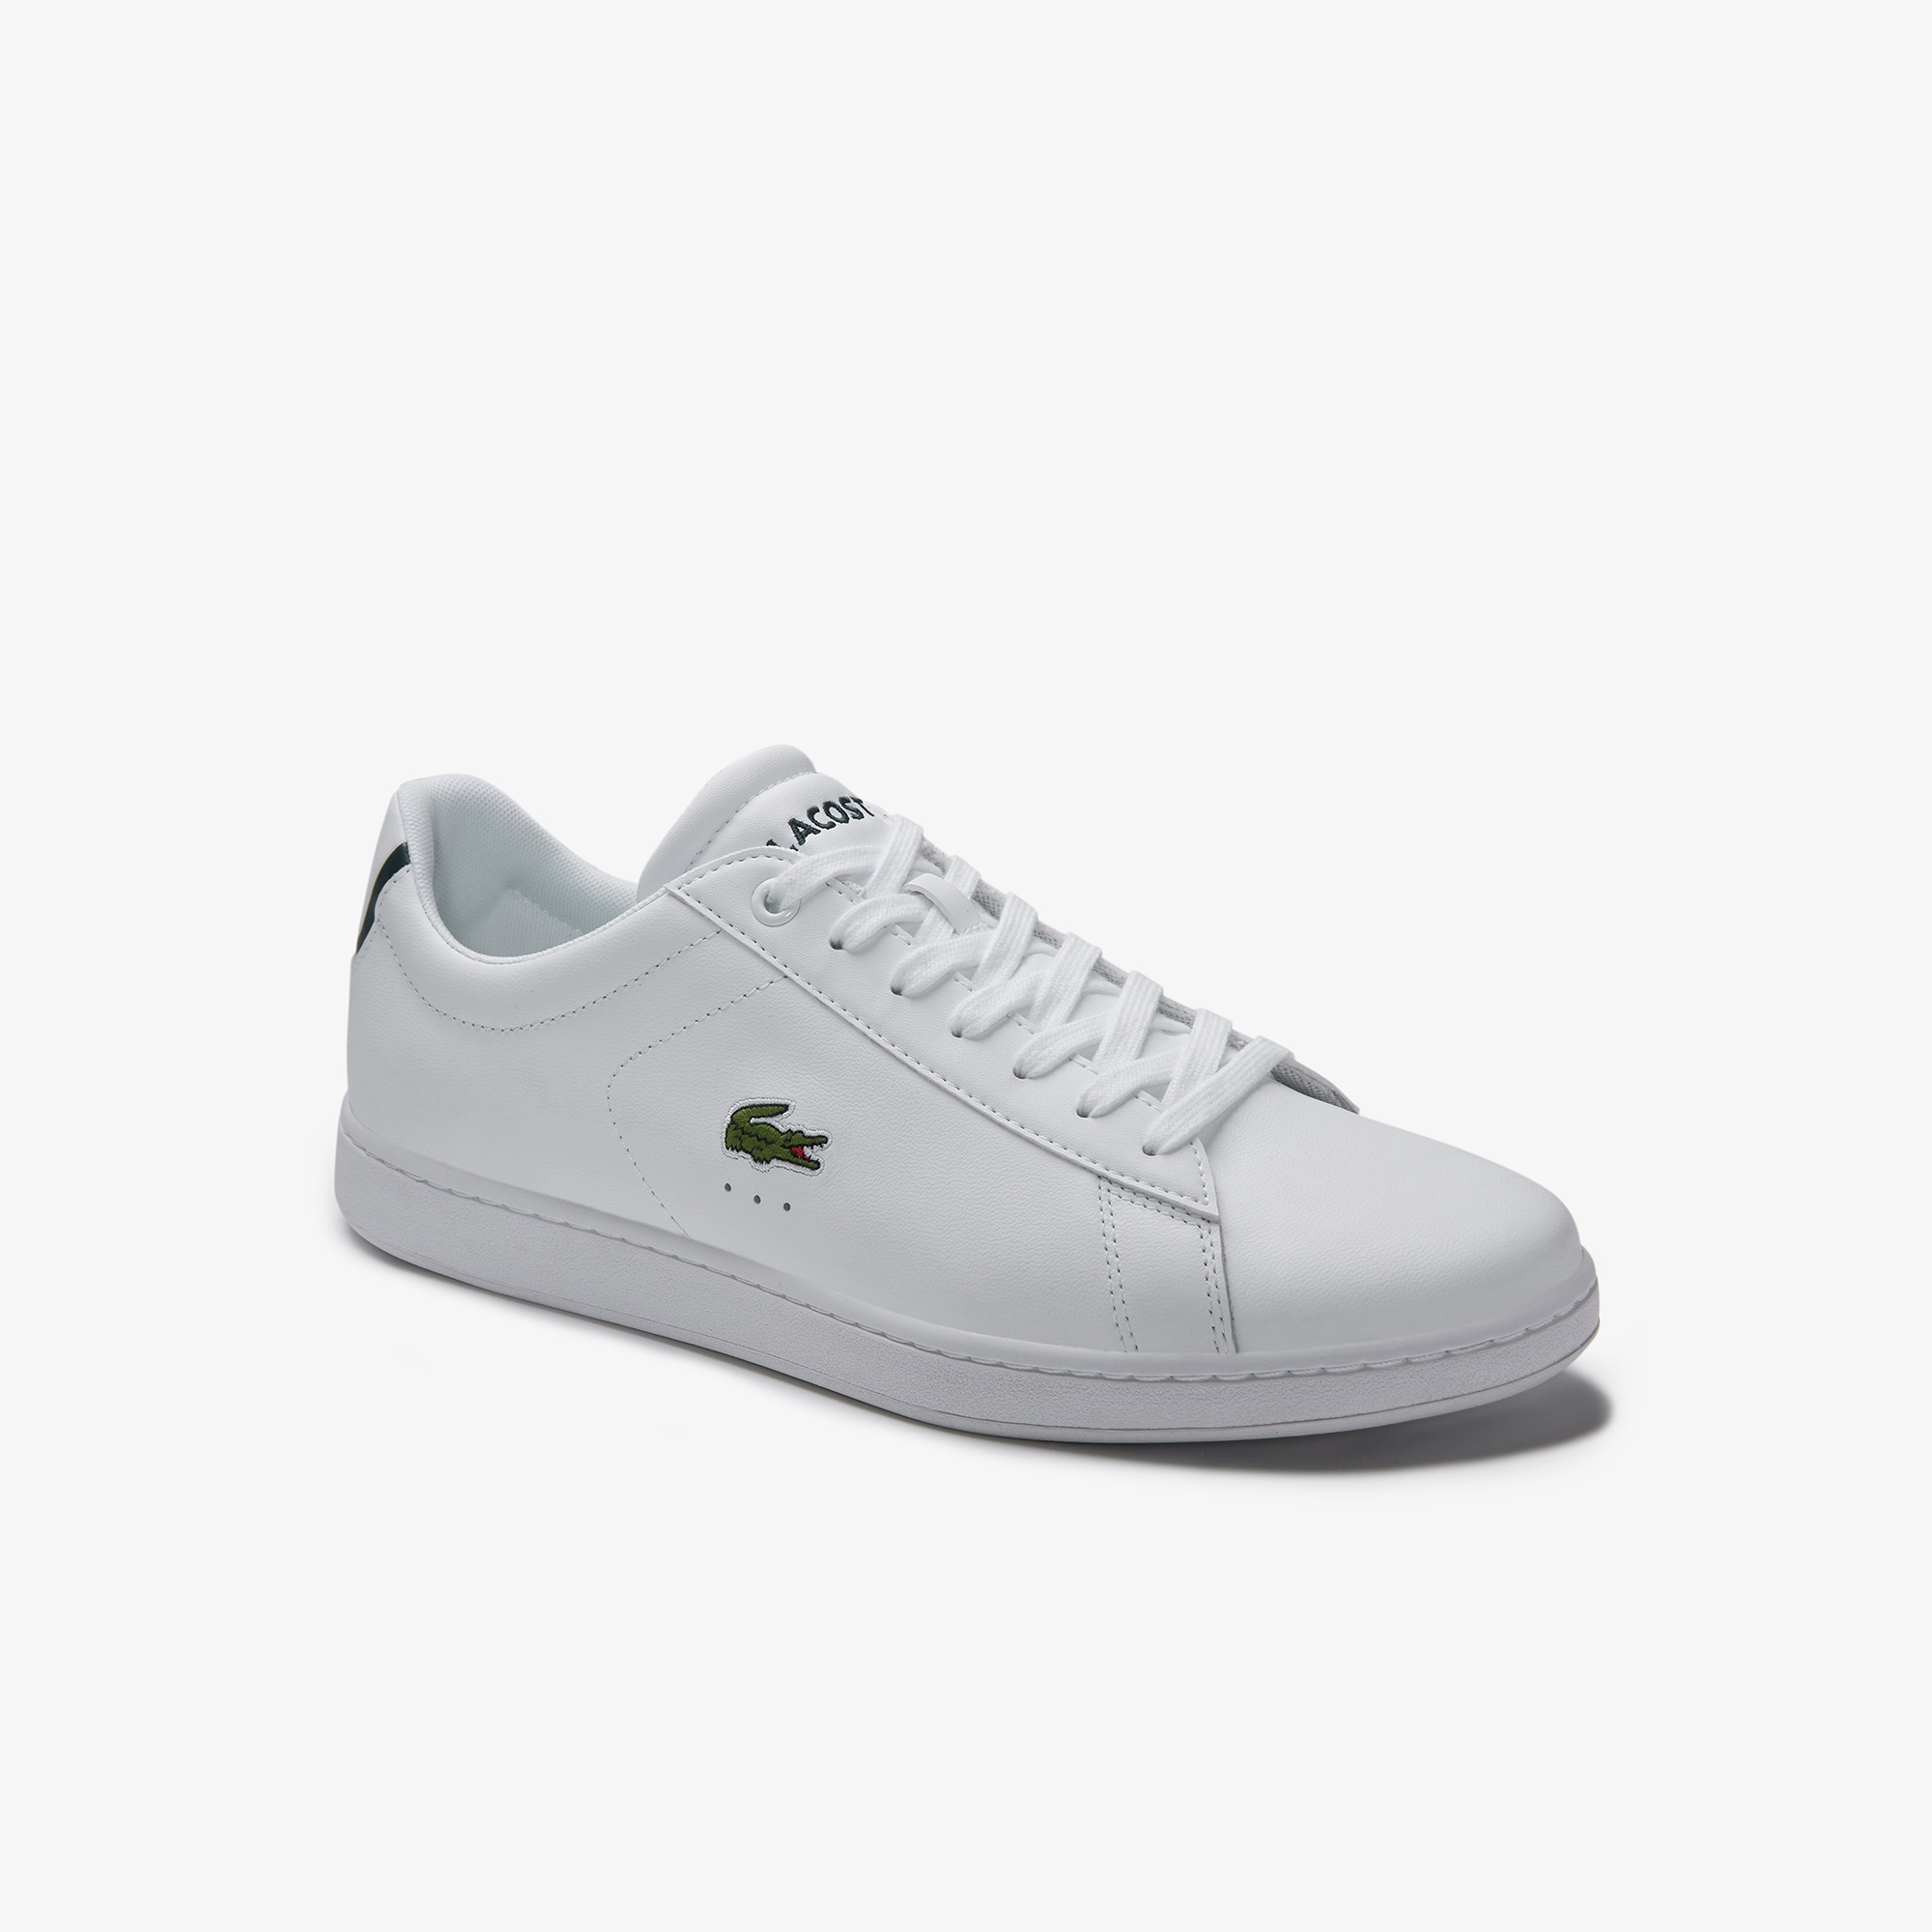 6a50a991eb1f13 + 2 colors. Men's Carnaby Evo ...